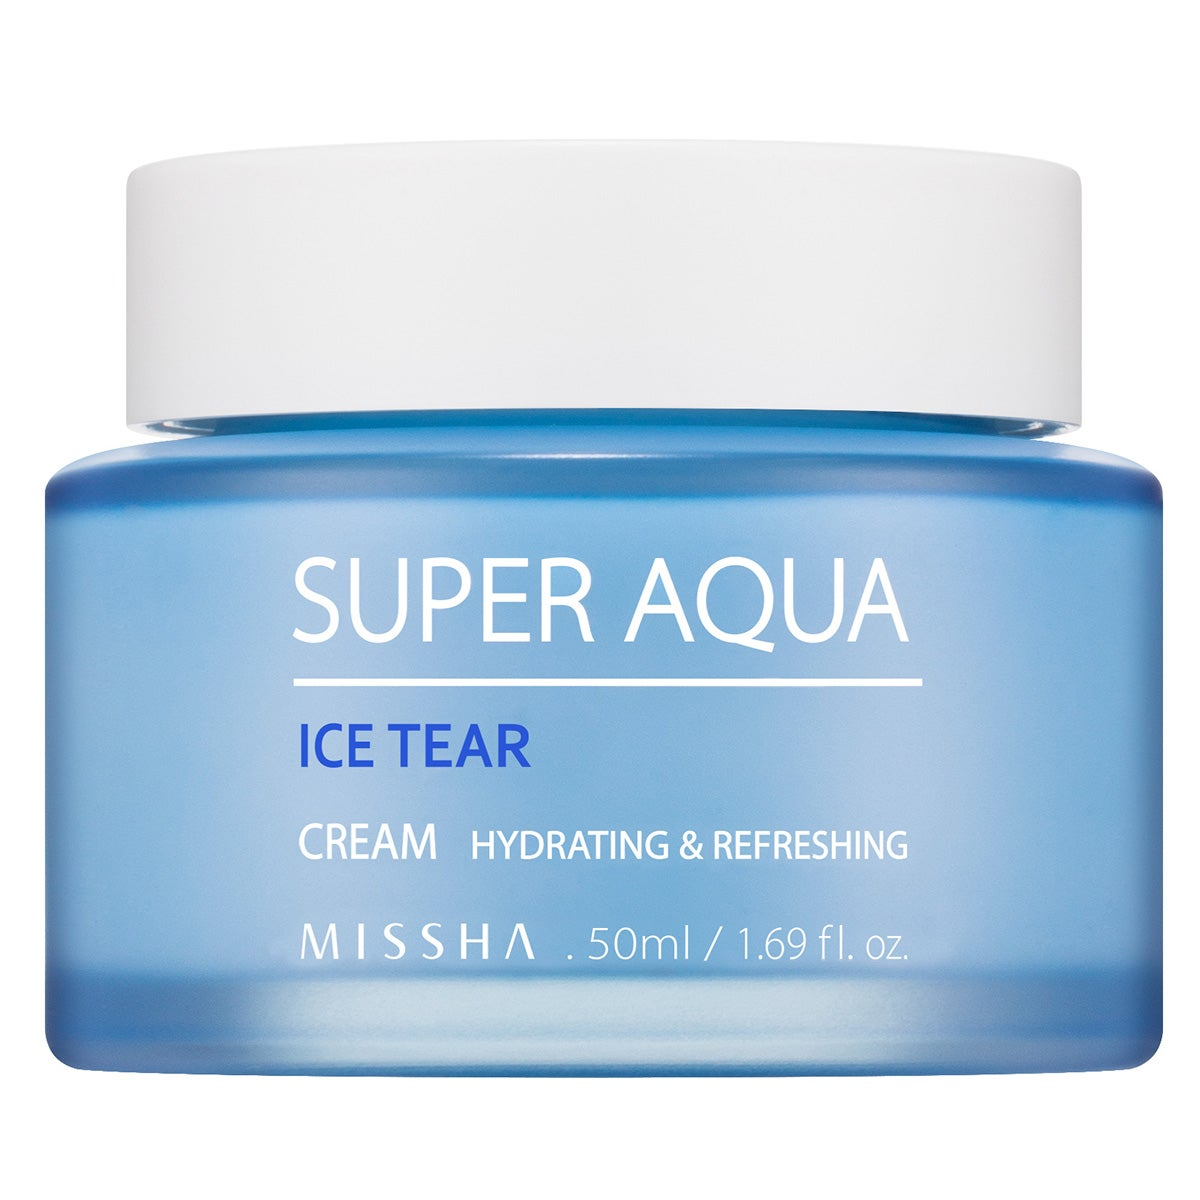 MISSHA Super Aqua Ice Tear Cream